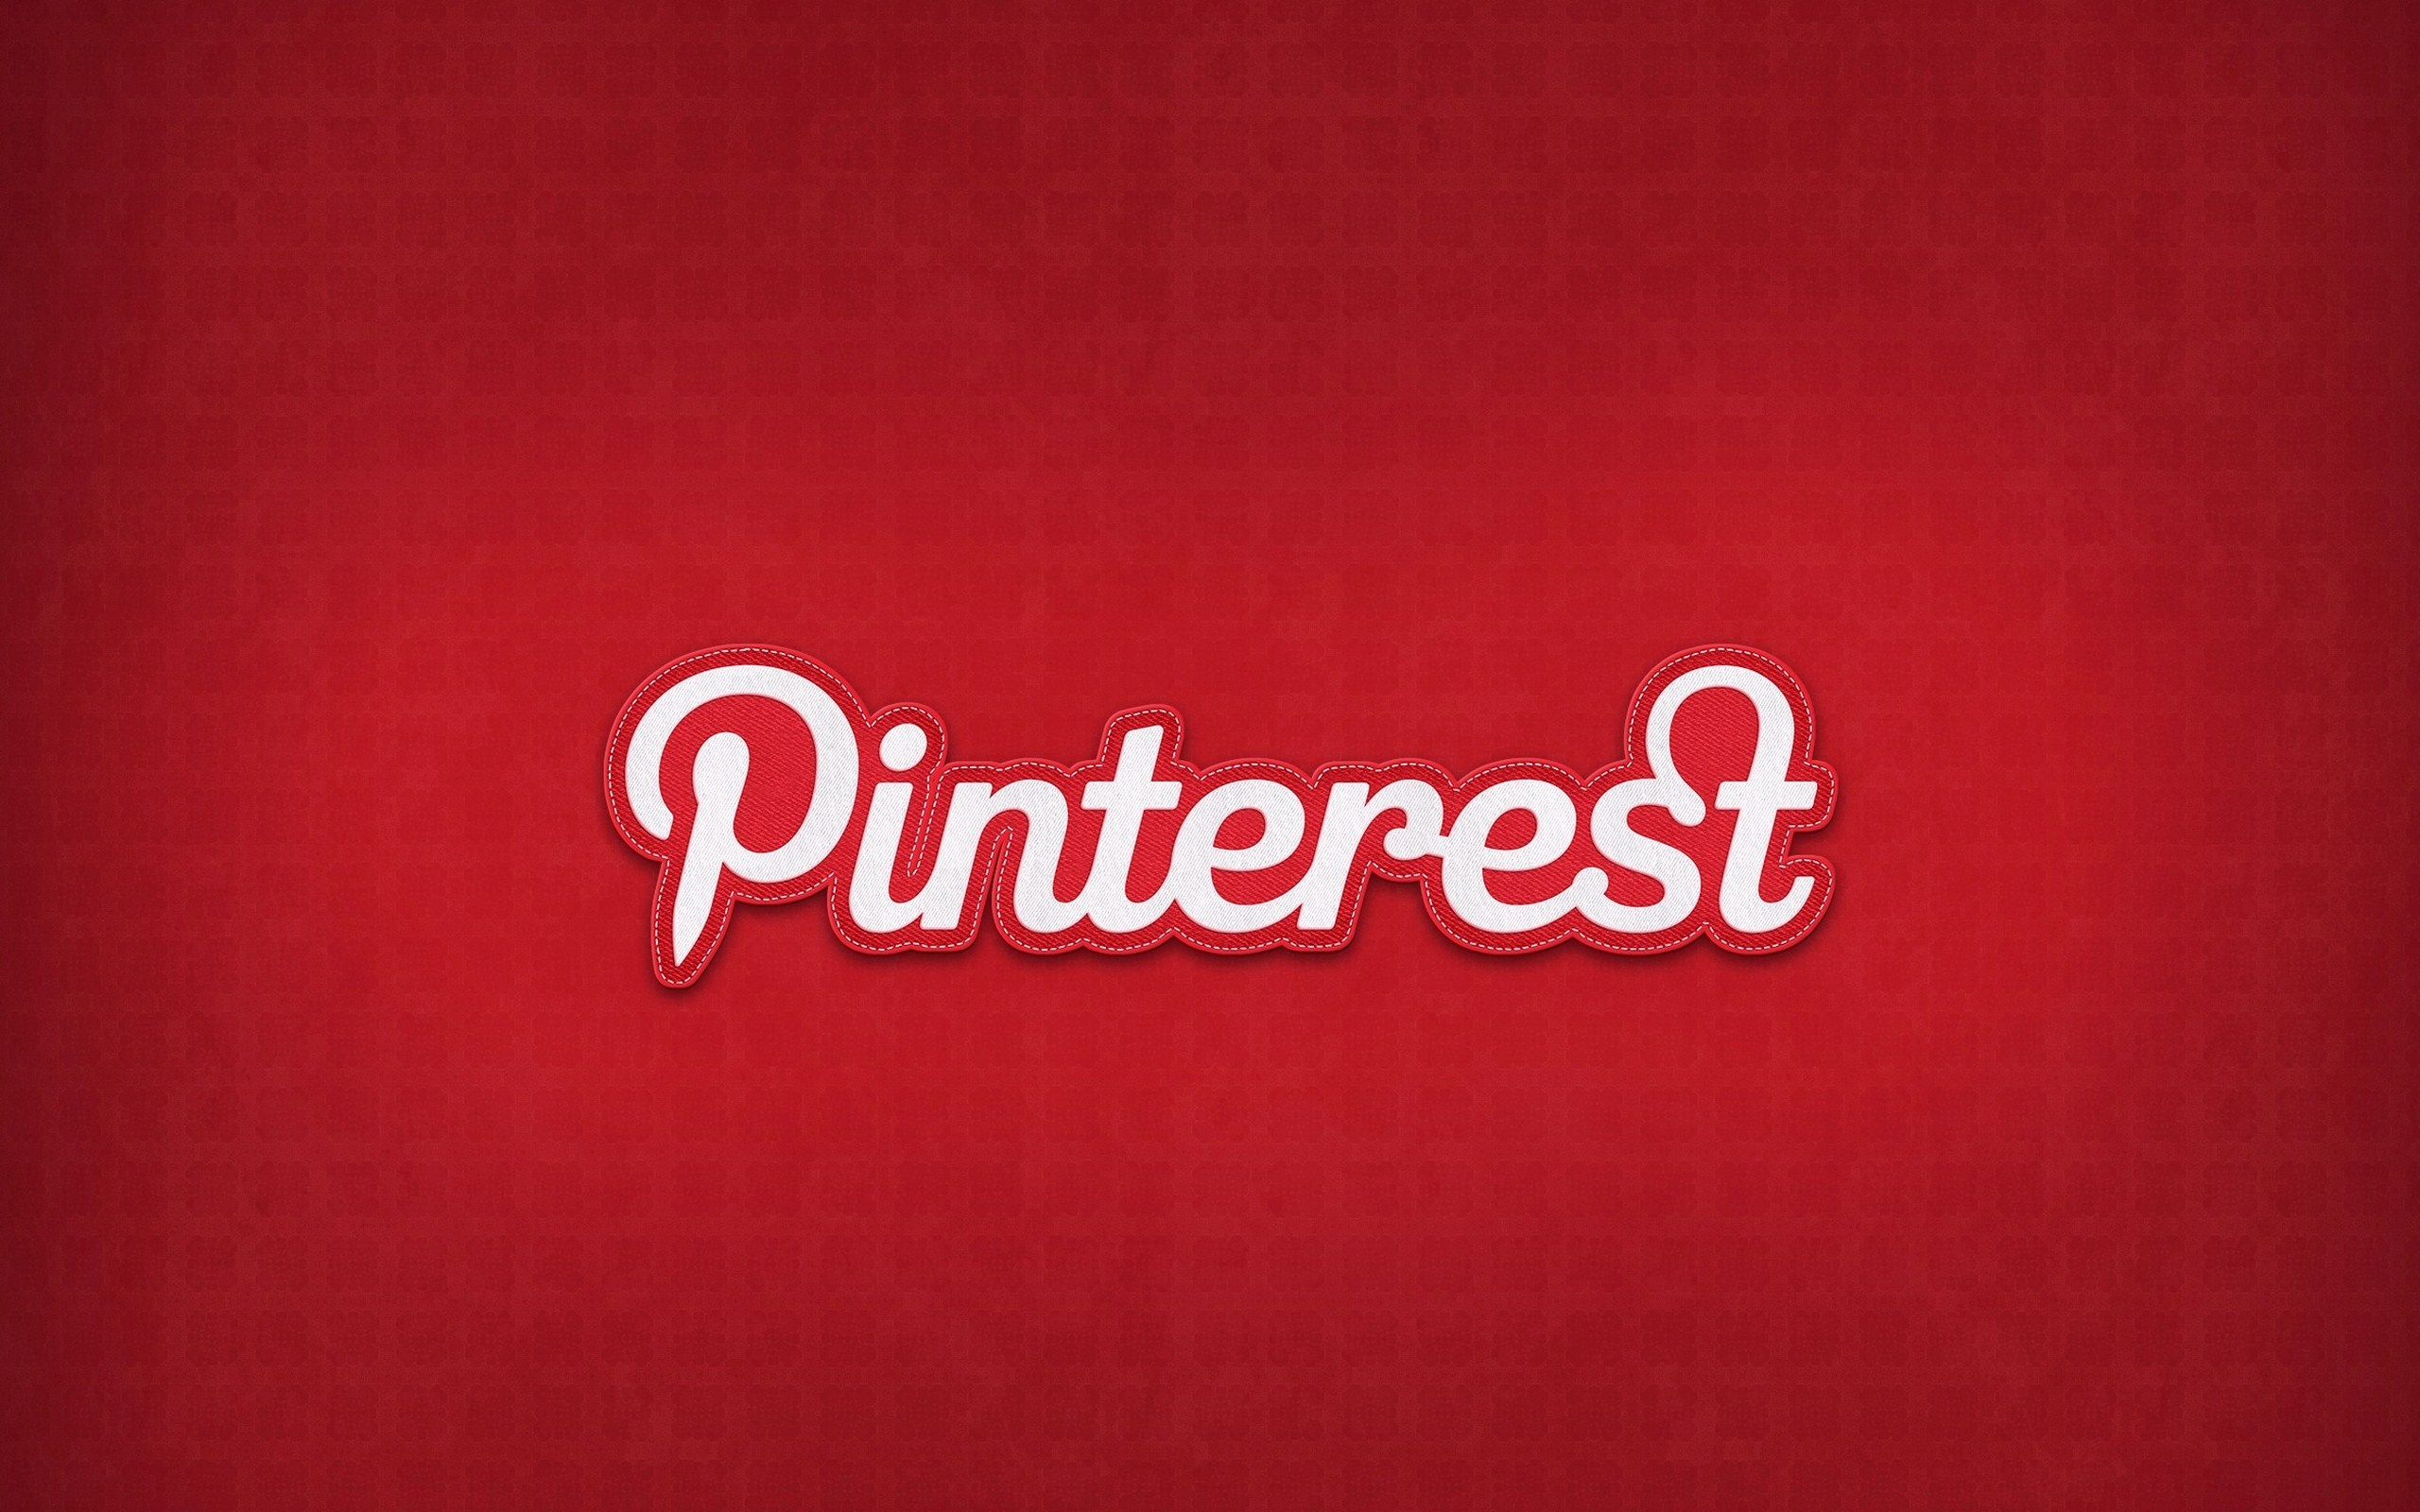 Pinterest Logo Wallpaper